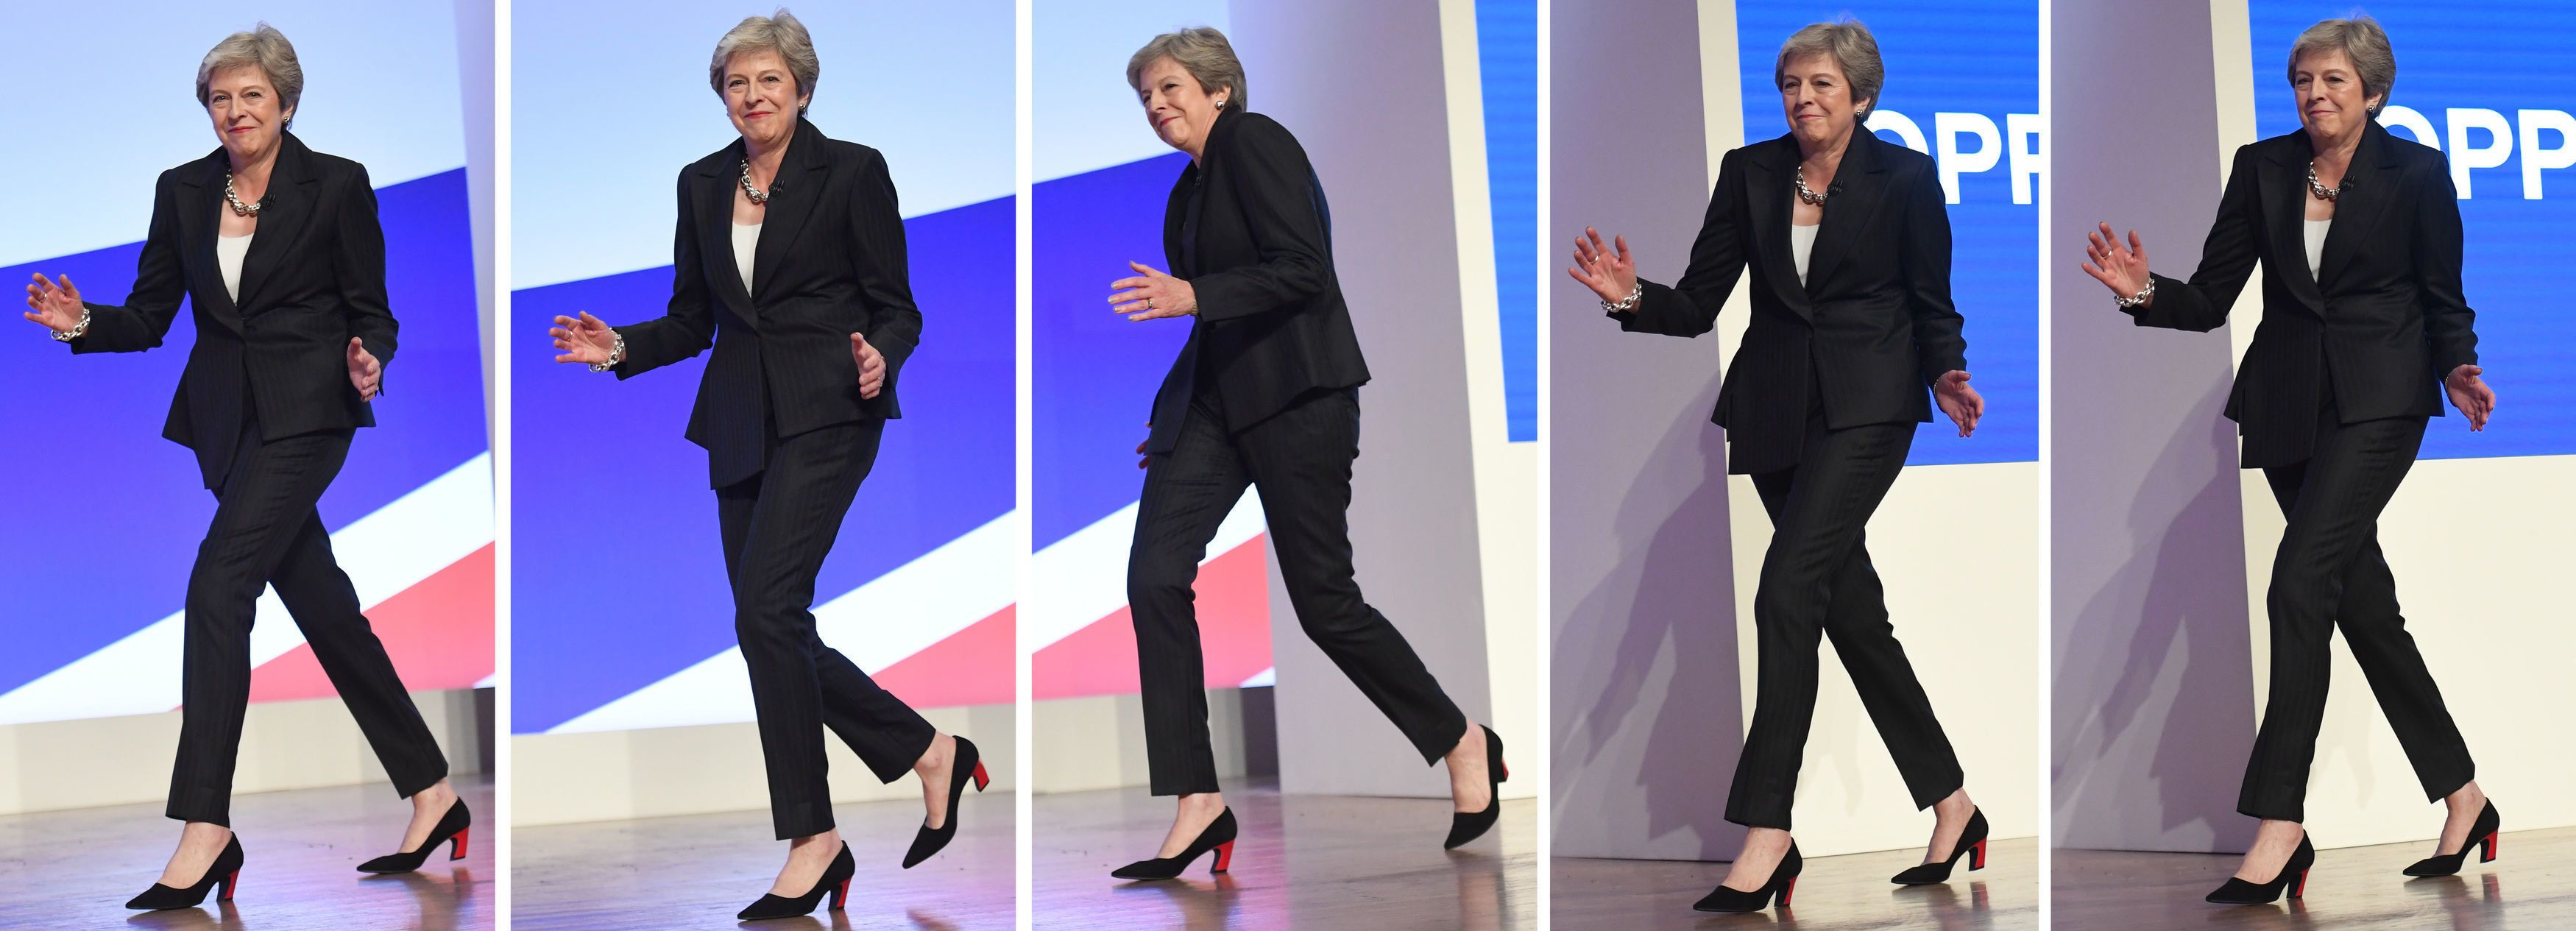 Theresa May Just Opened Her Conference Speech Dancing To ABBA. Yes